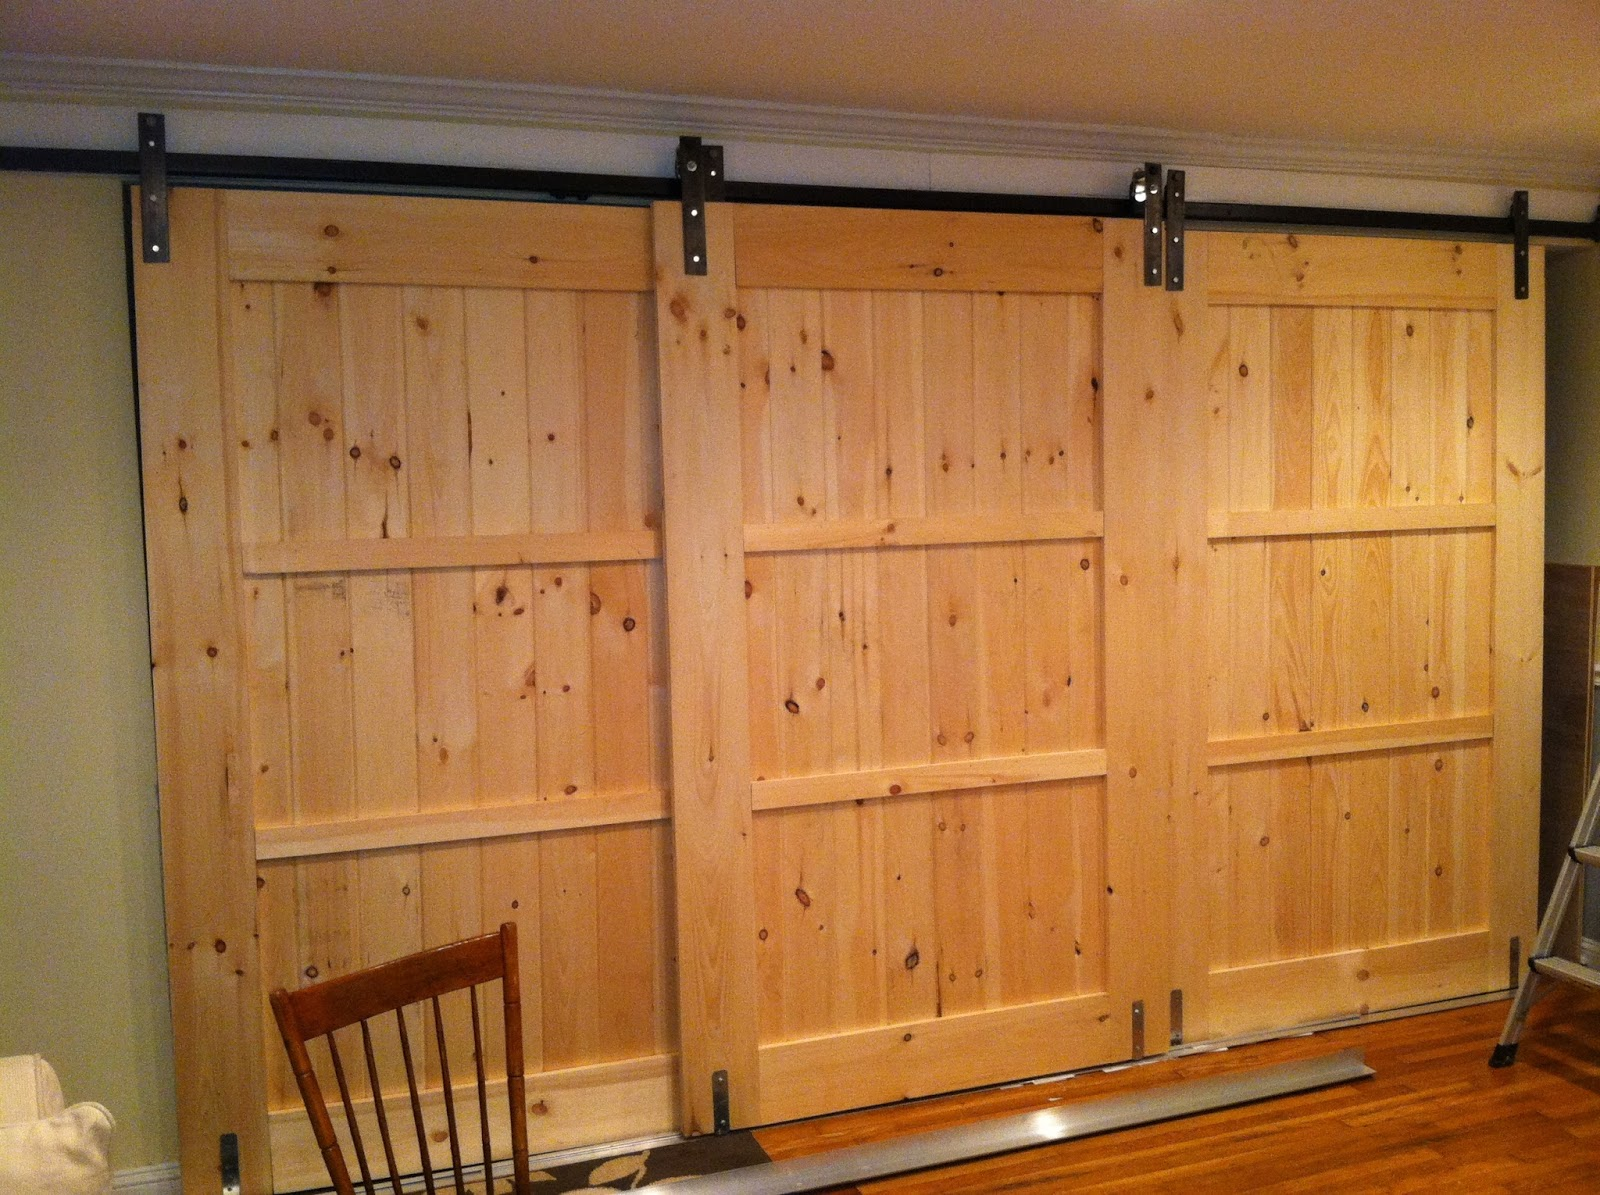 Mfsamuel Finally Posting My Barn Doors With A Twist At